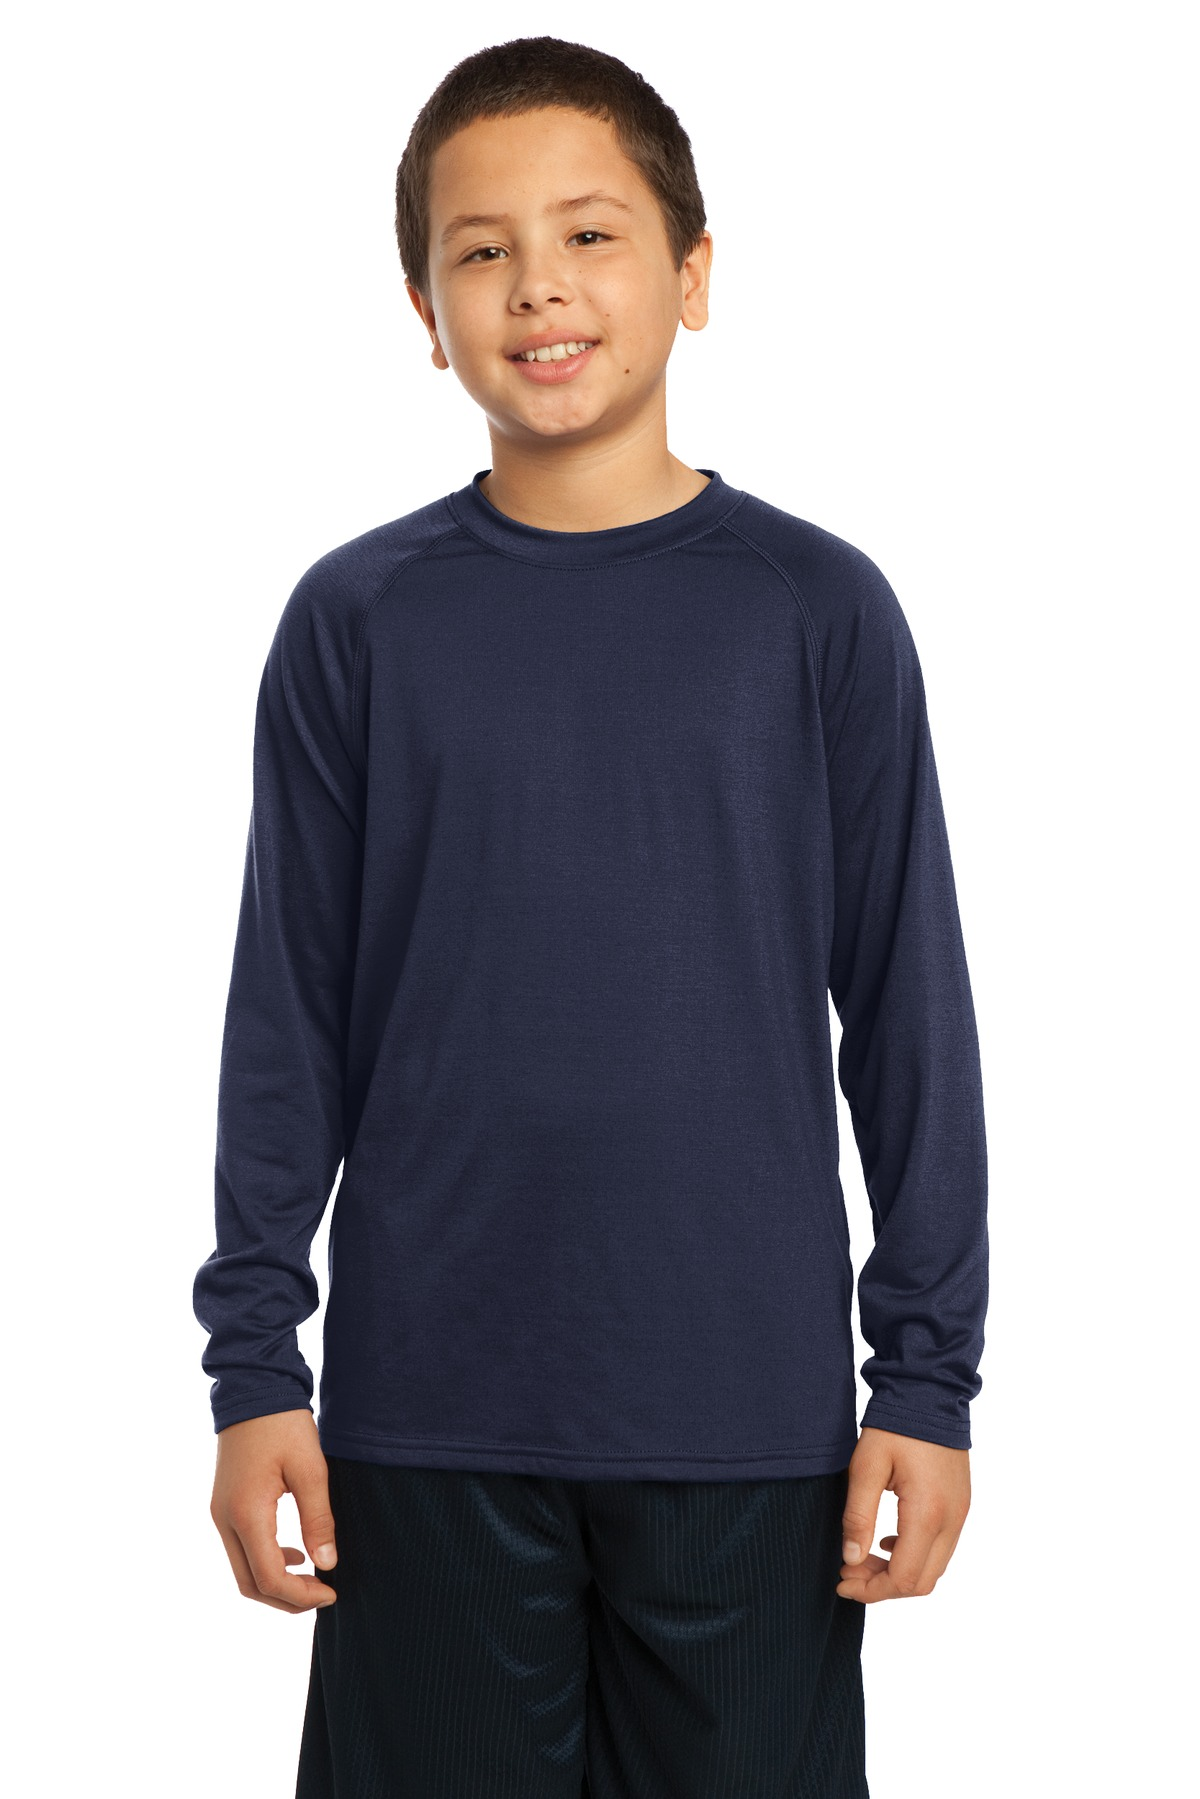 DISCONTINUED Sport-Tek Youth Long Sleeve Ultimate Performance Crew. YST700LS